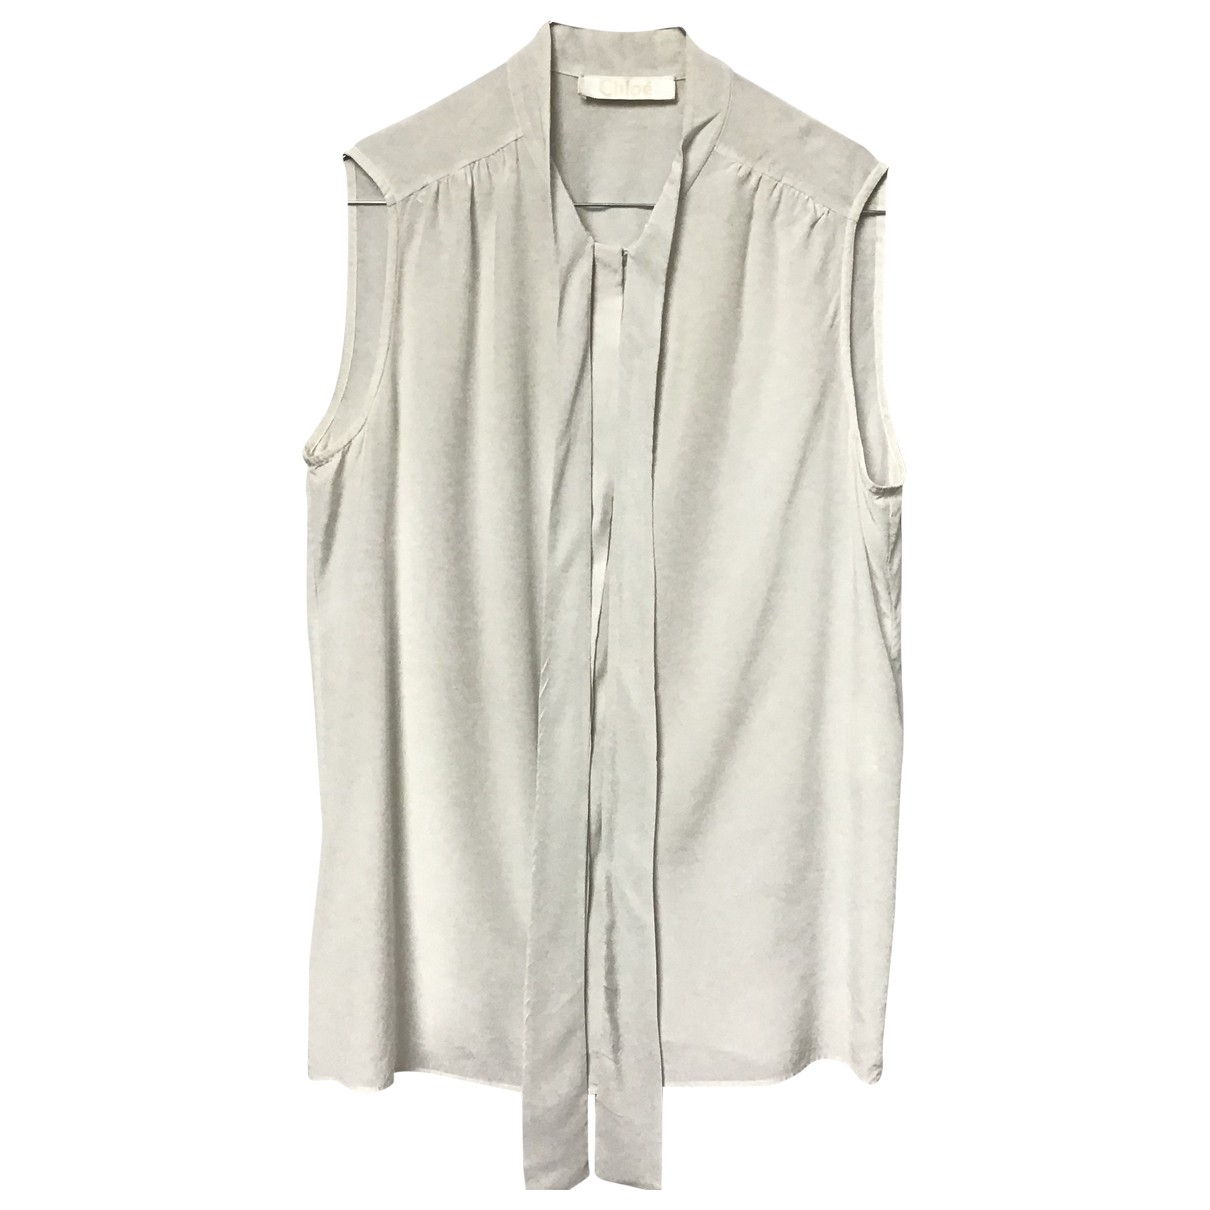 Chloé \N Ecru Silk  top for Women 38 FR